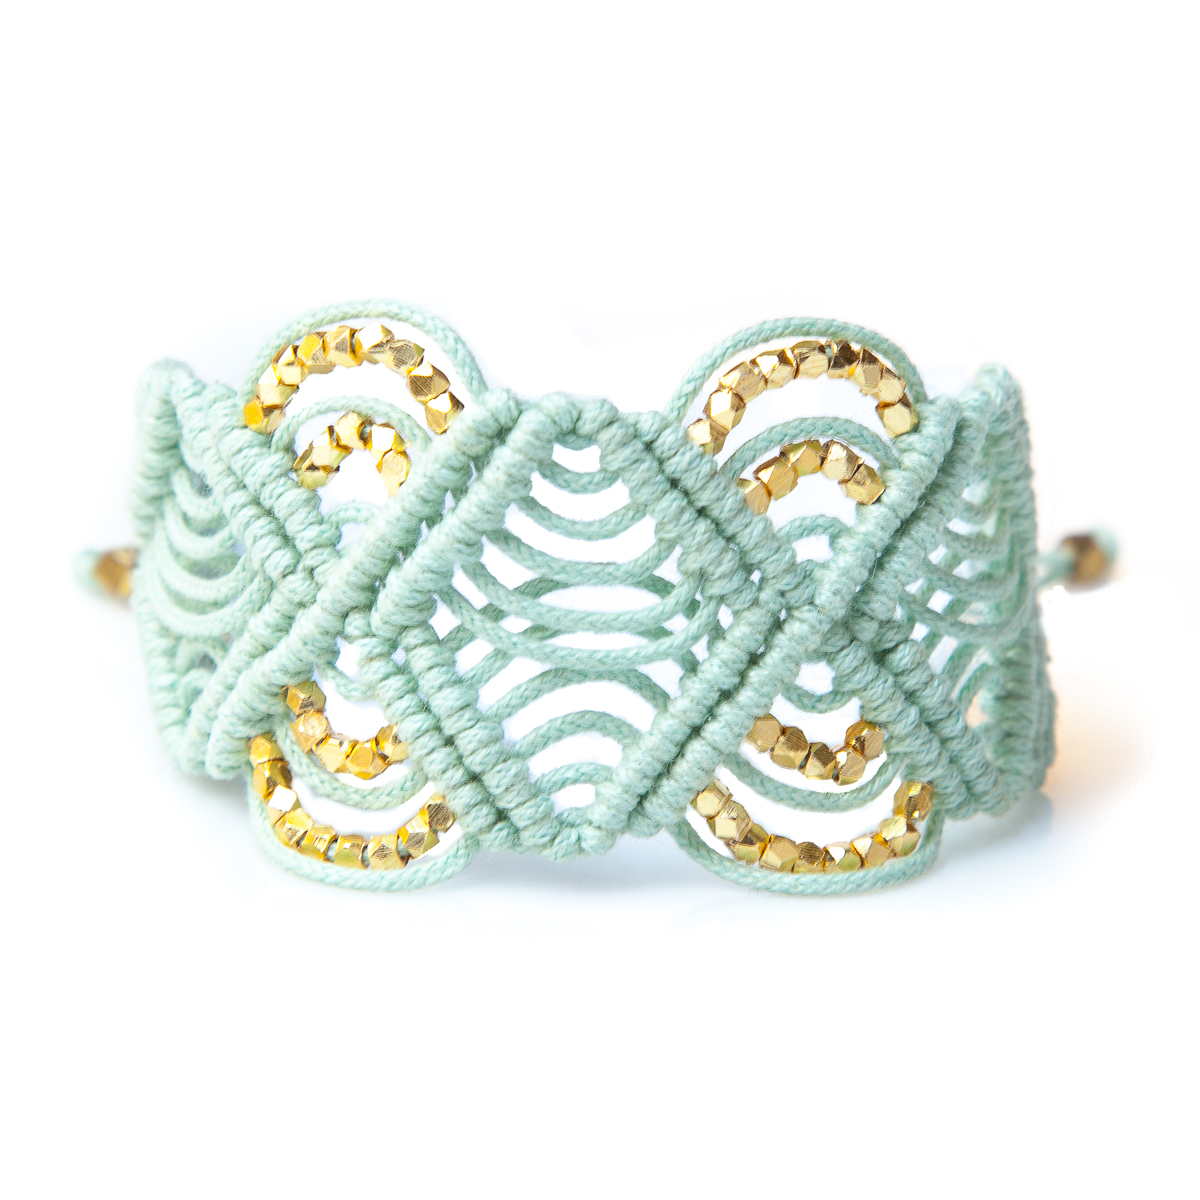 CORDA-MACRAME-RIO-CUFF-MEDIUM-MINT.jpg